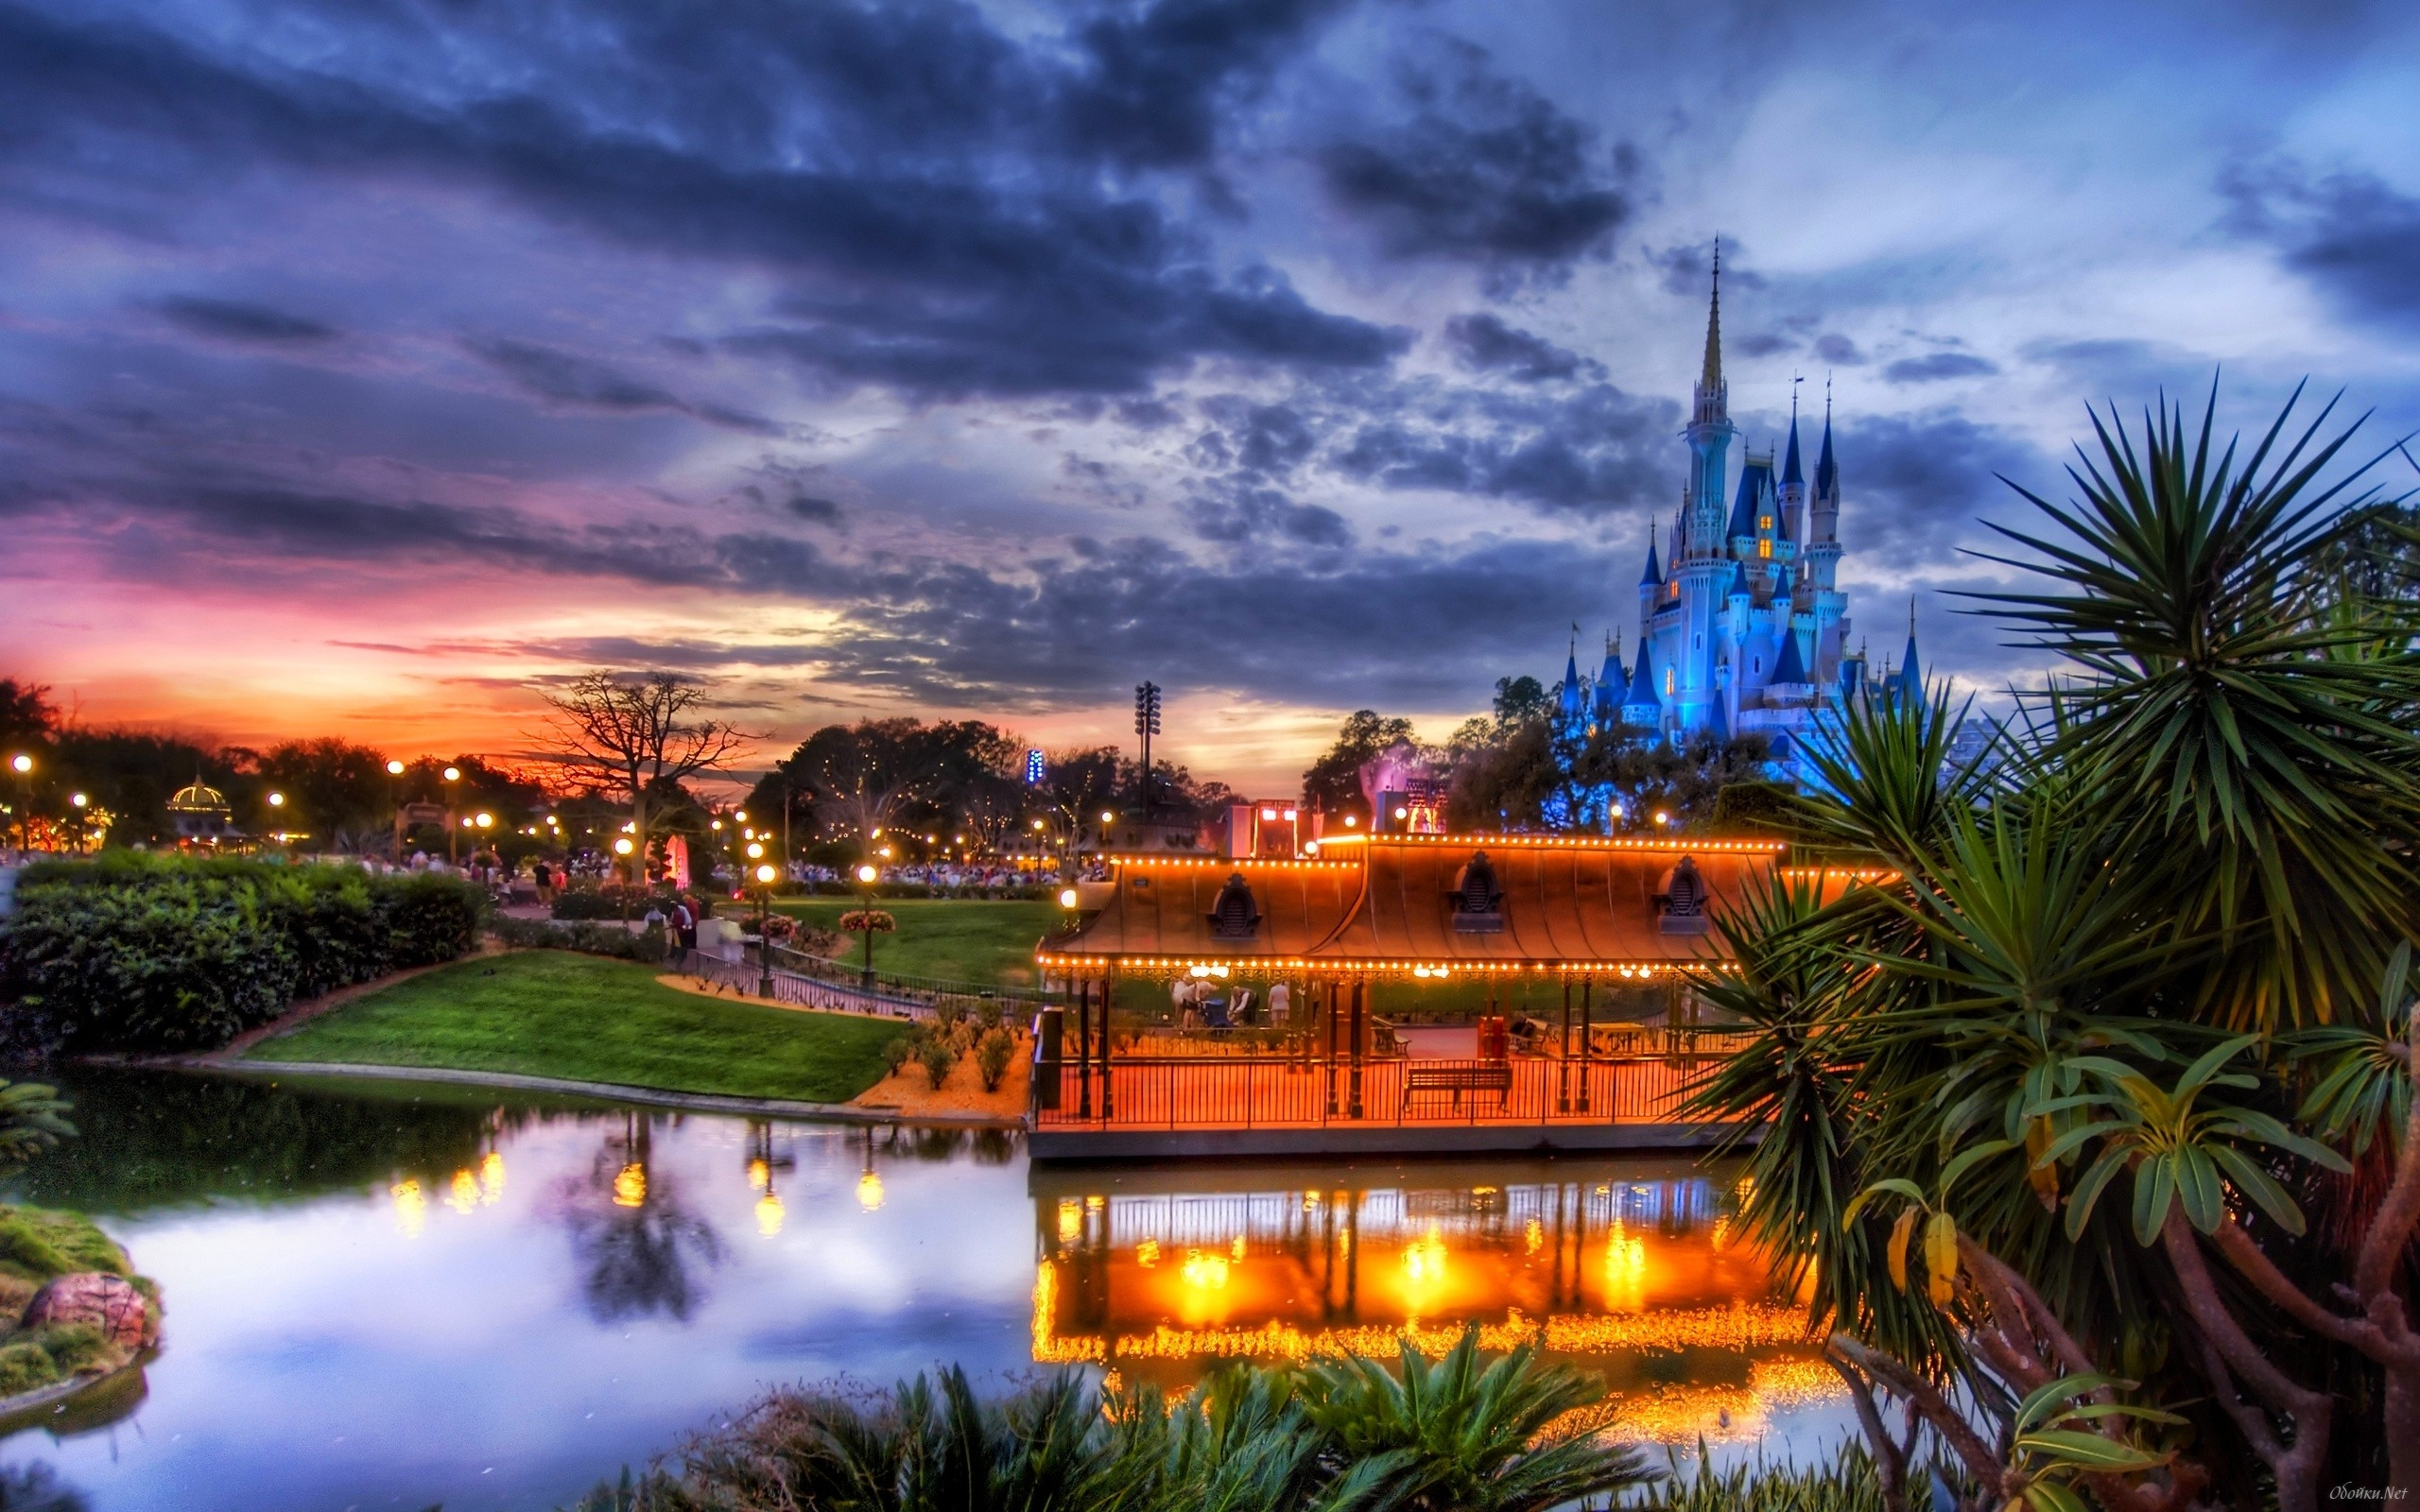 Disney town HD Desktop Wallpaper HD Desktop Wallpaper 2560x1600